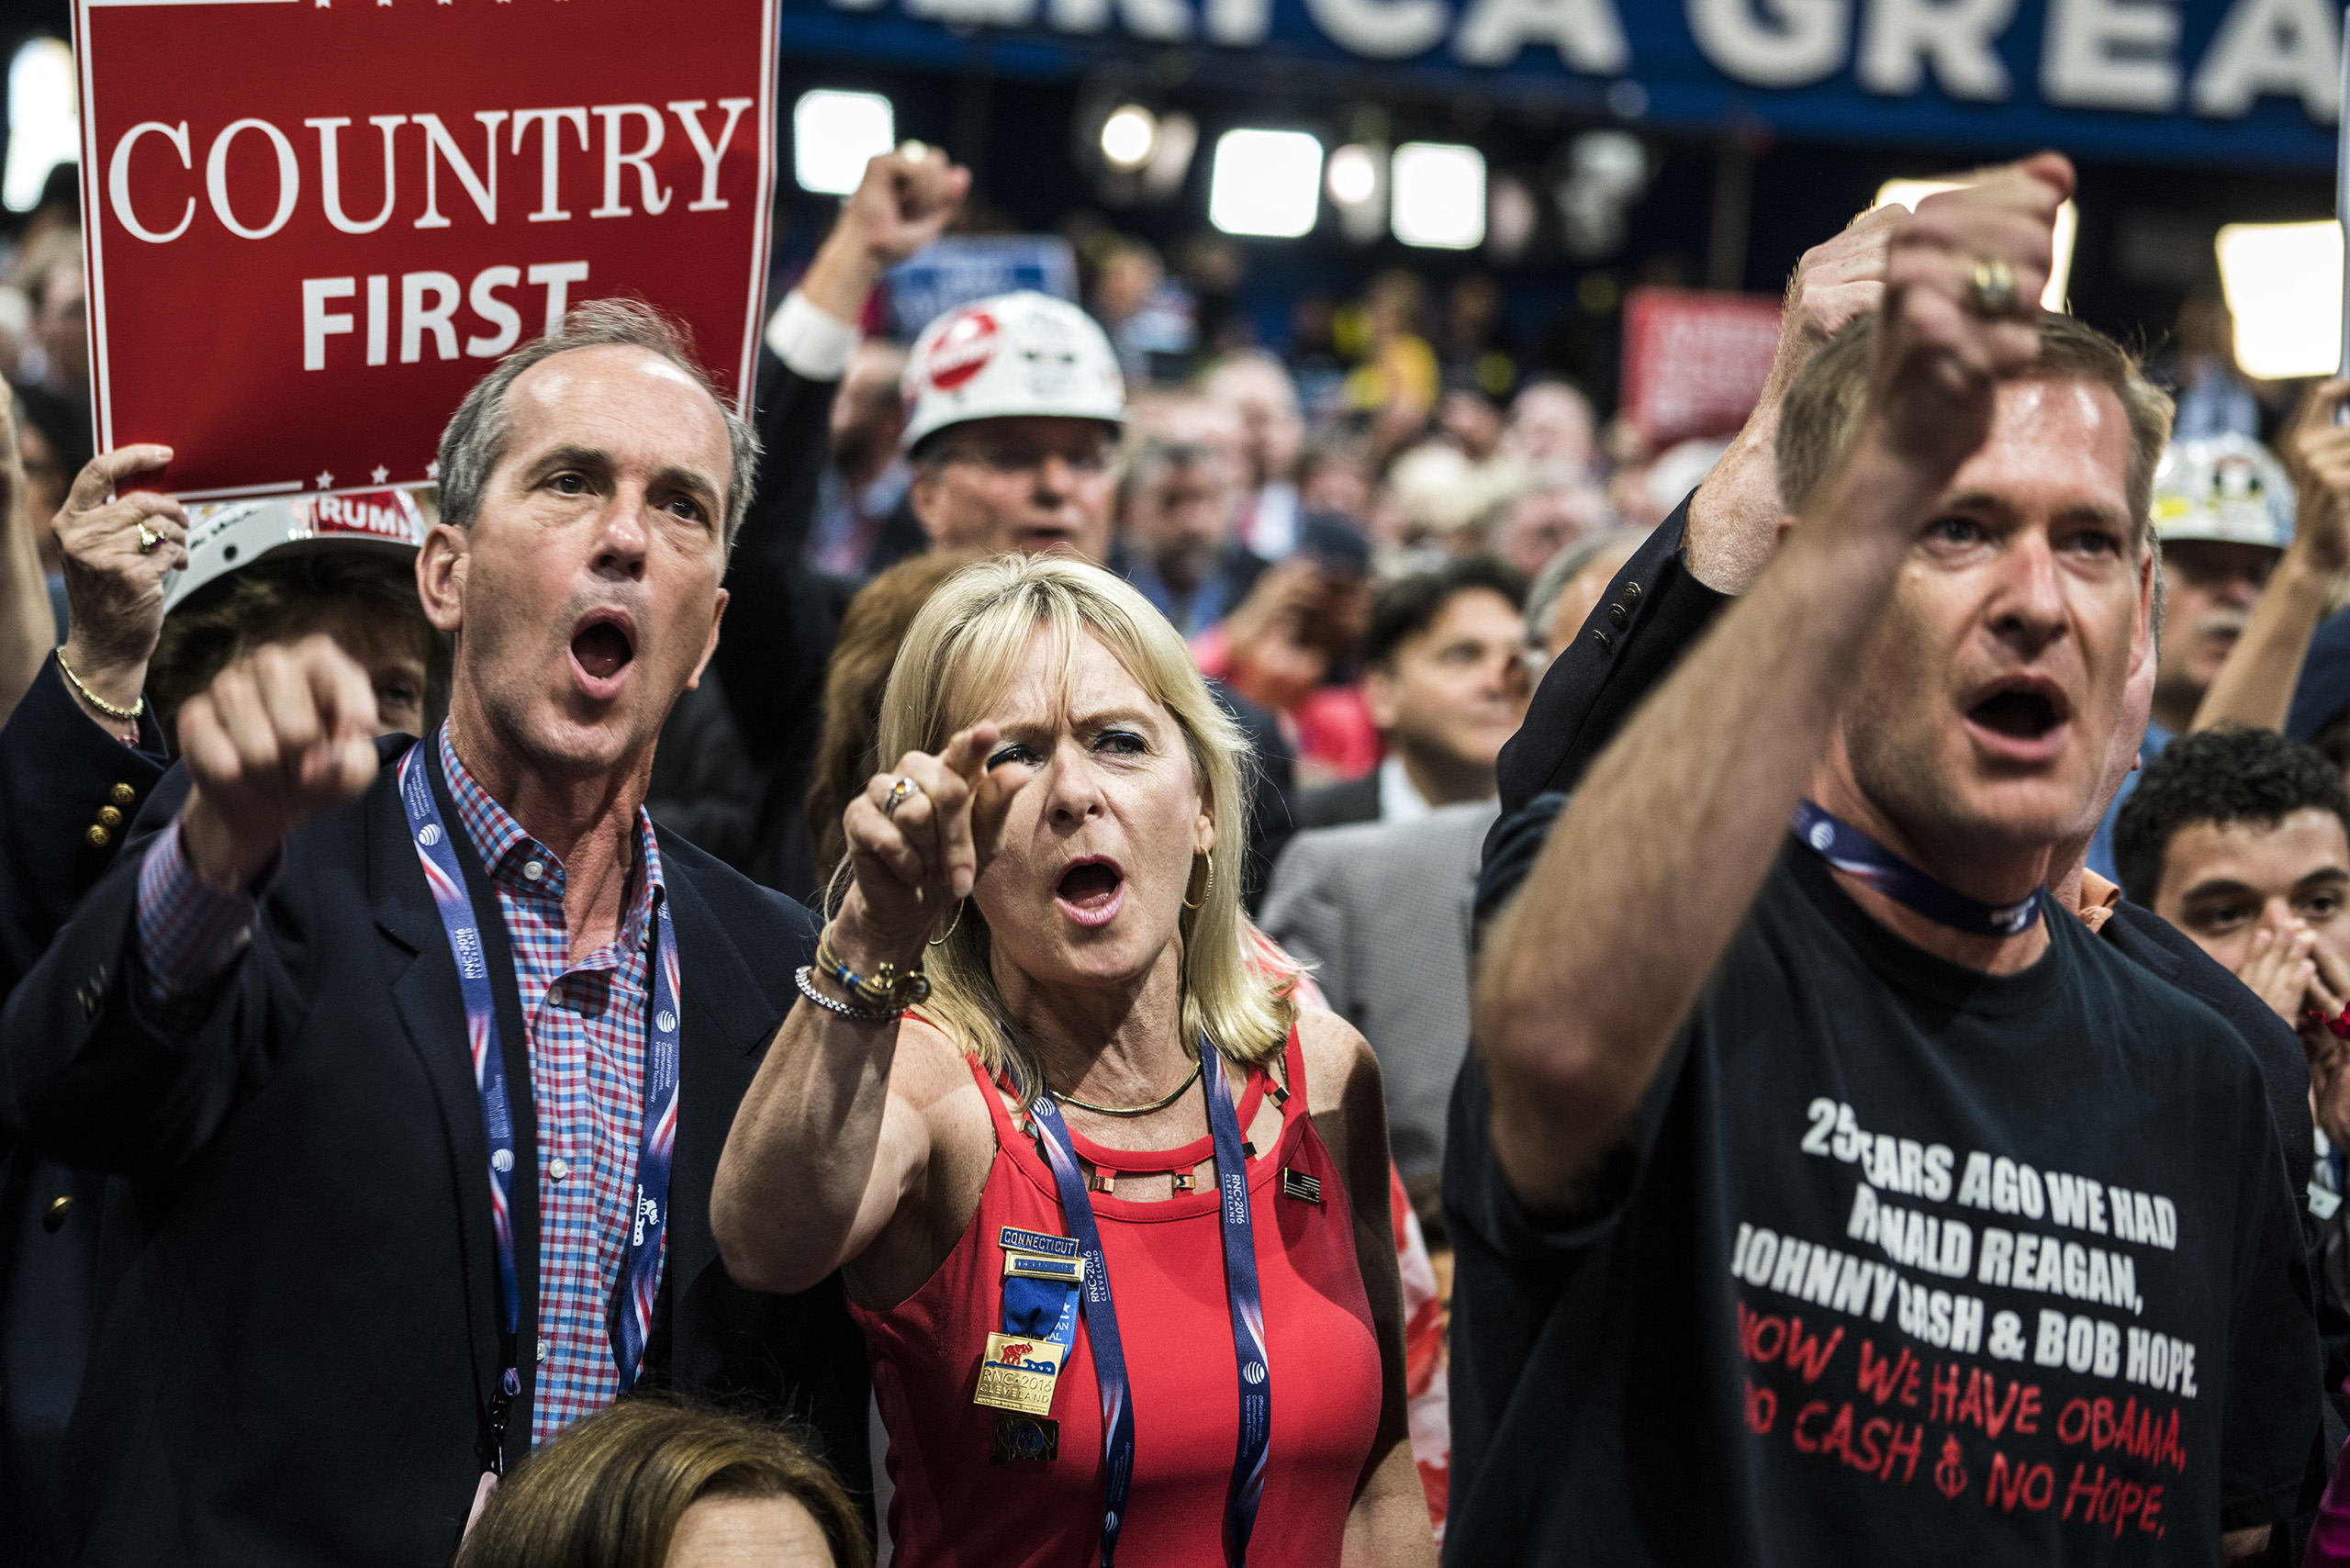 Delegates react to Ted Cruz during his contoversial speech where he refused to endorse presidential candidate Donald Trump on July 20, 2016, at the Quicken Loans Arena in Cleveland, Ohio.